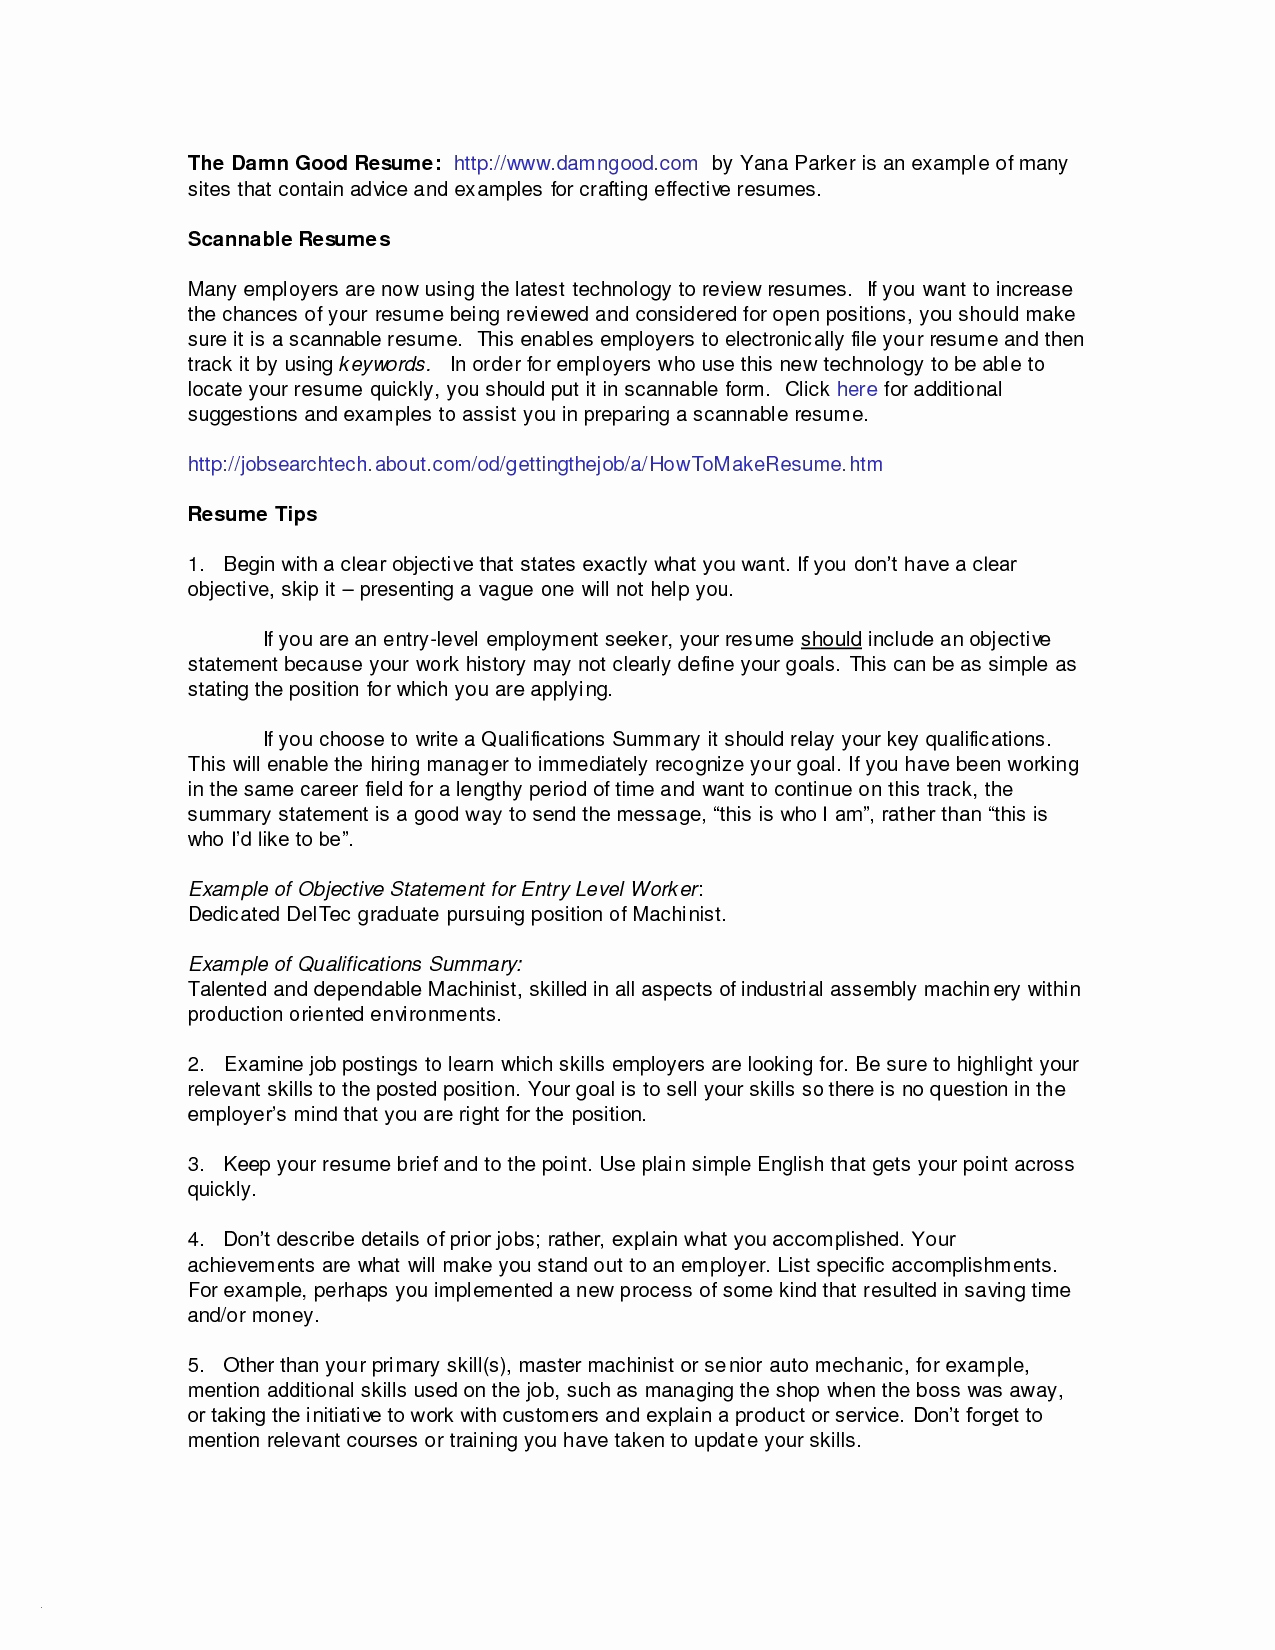 Medical assistant Summary for Resume - Resume Samples for Medical assistant Fresh Medical assistant Resumes